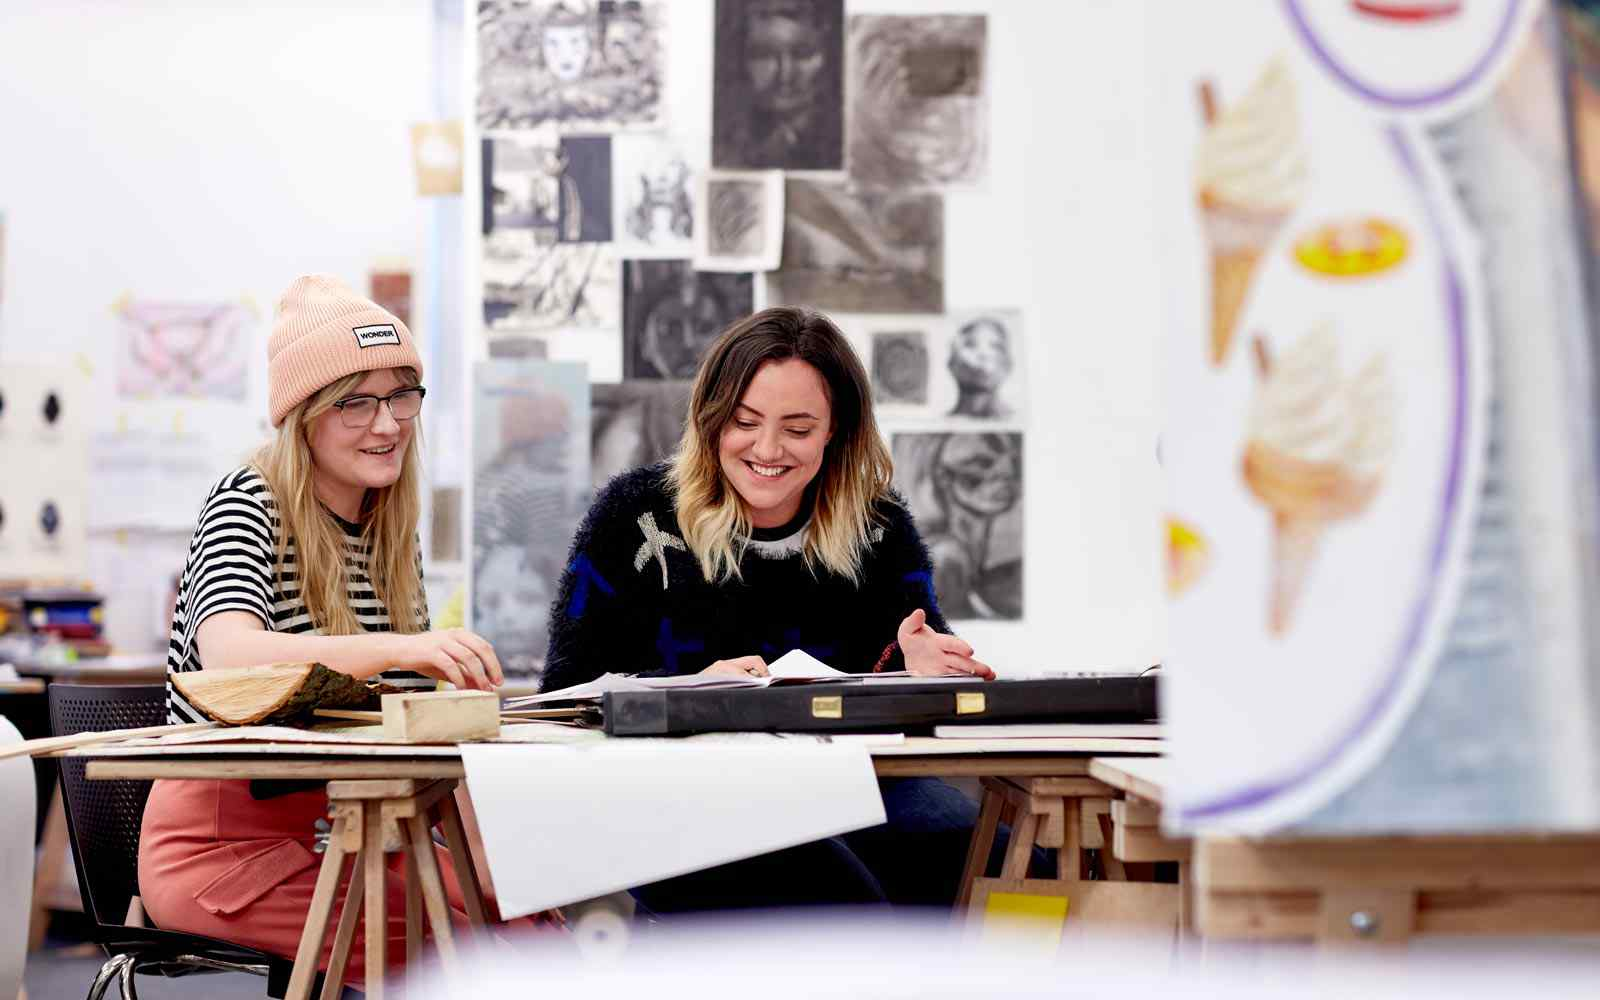 Students taking life drawing classes